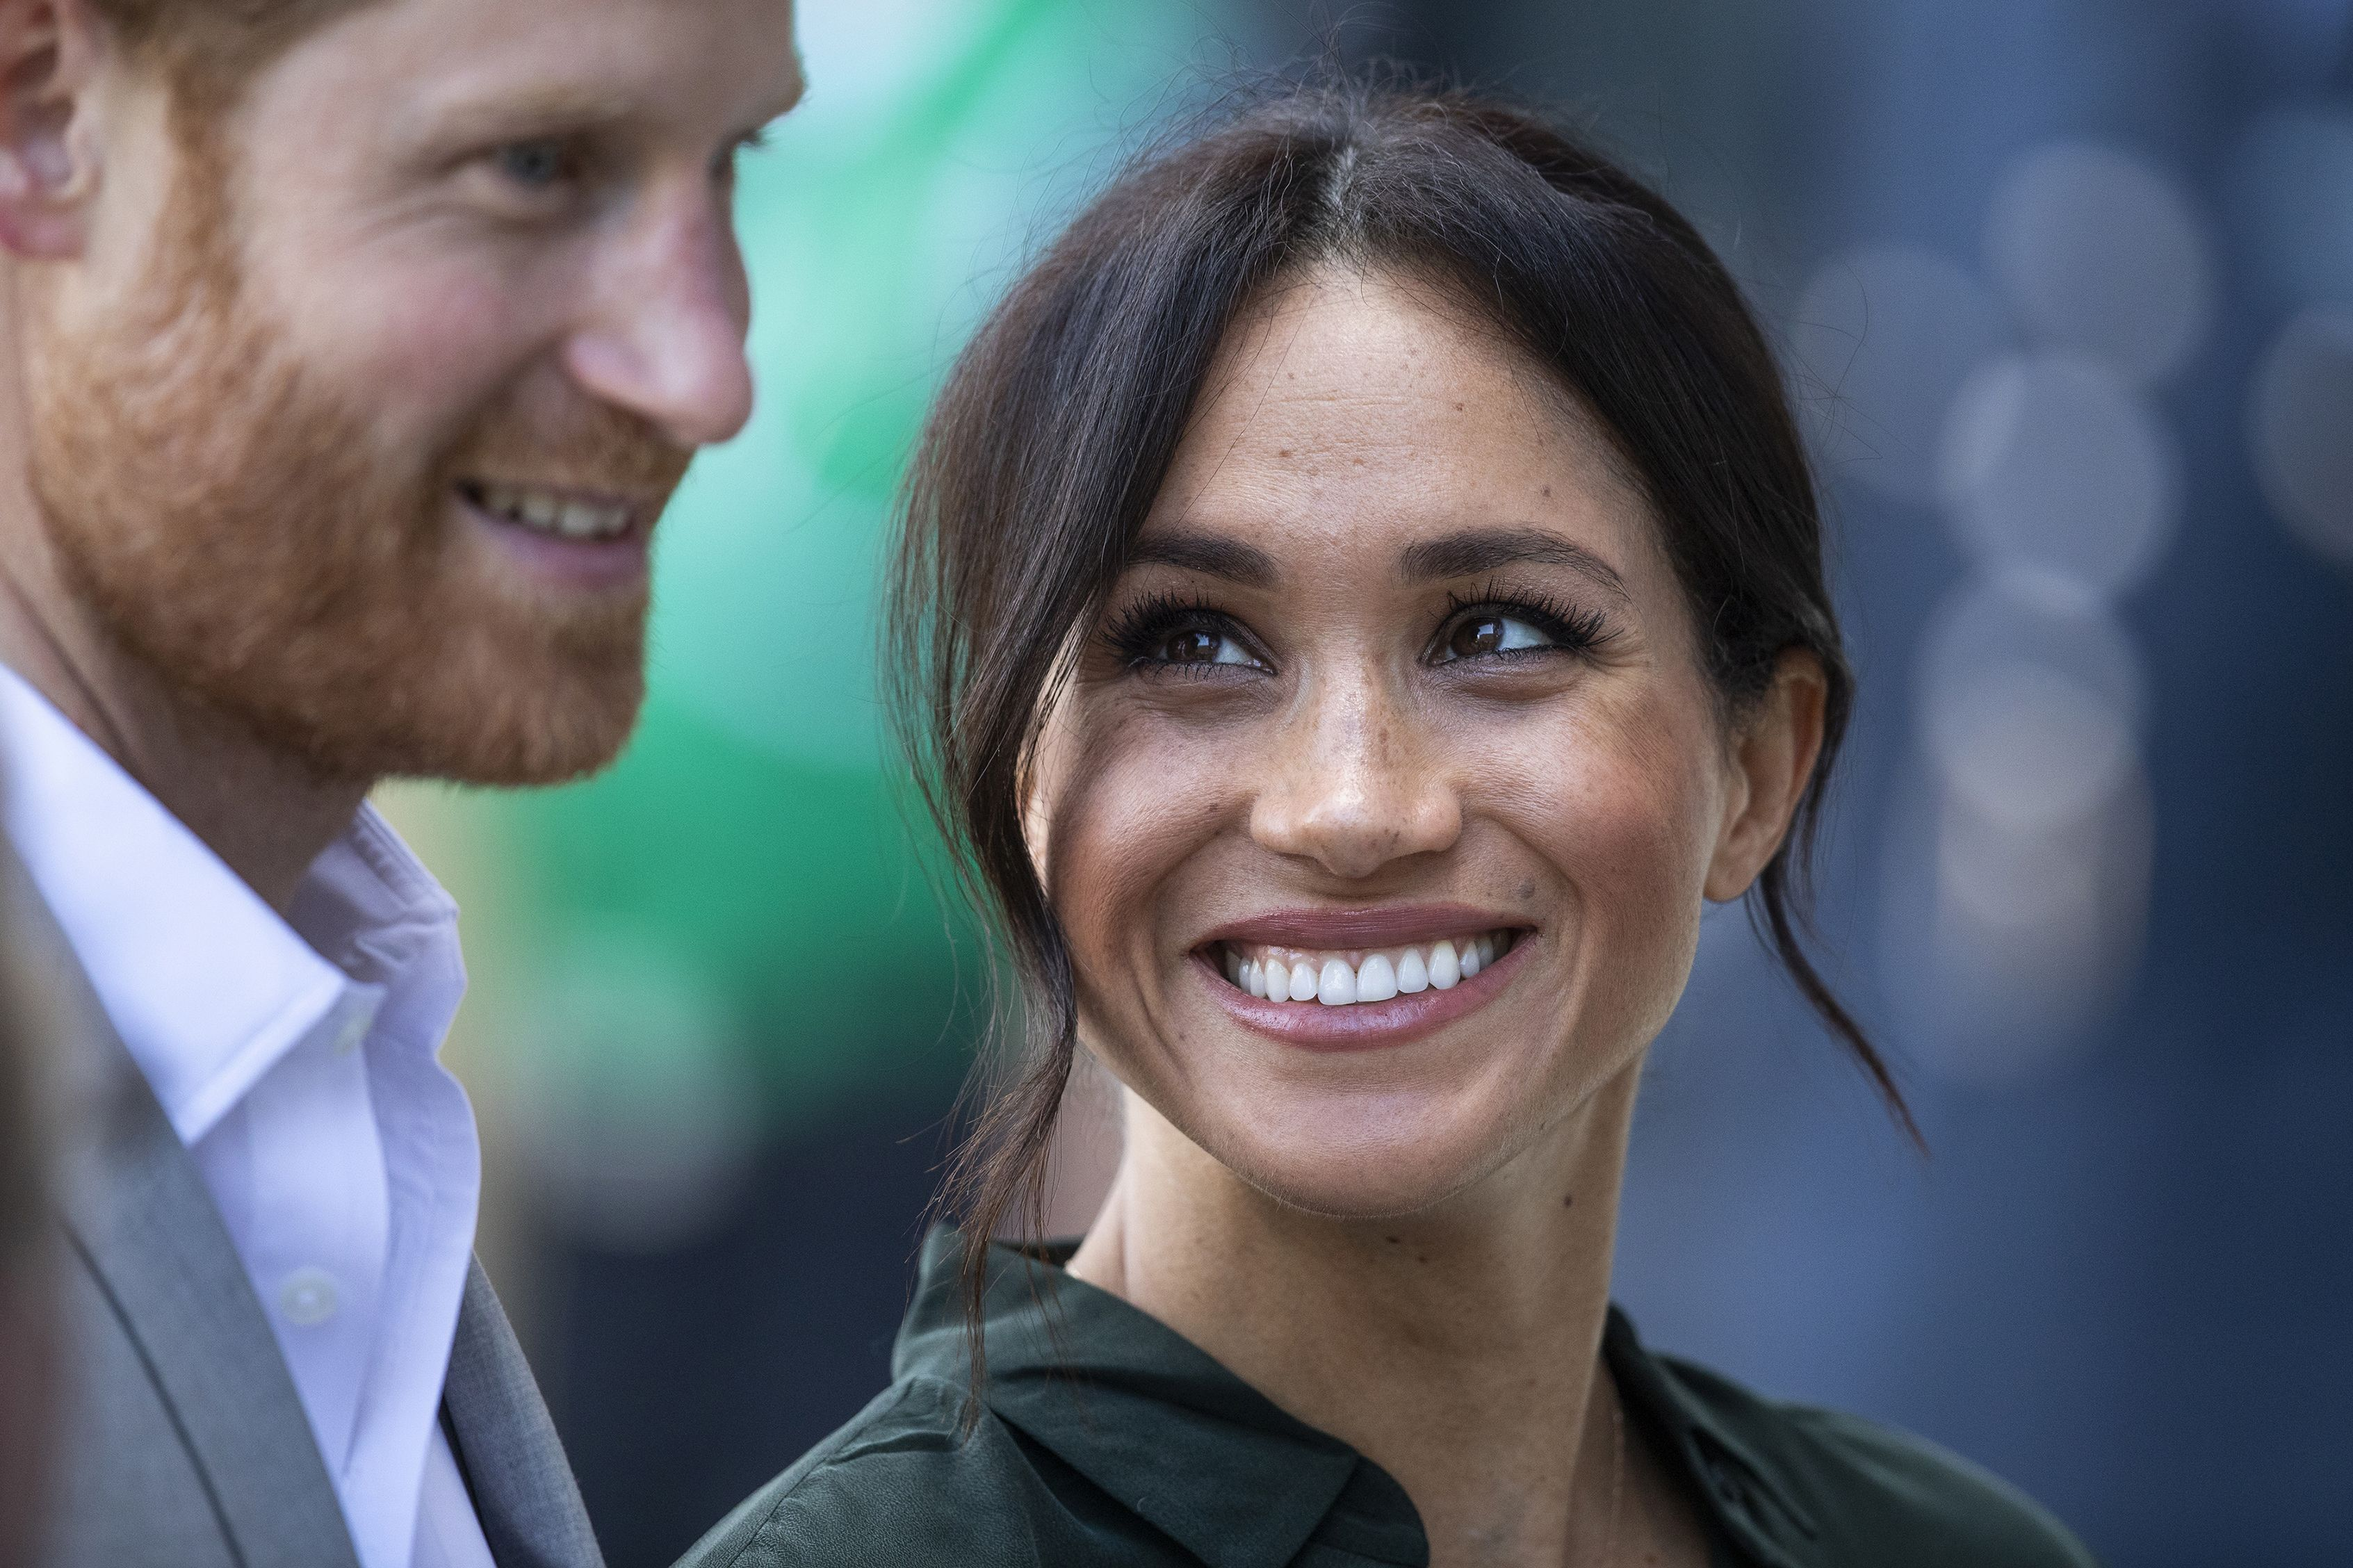 a1a59b541 Prince Harry and Meghan Markle's Cutest Couple Moments in Photos